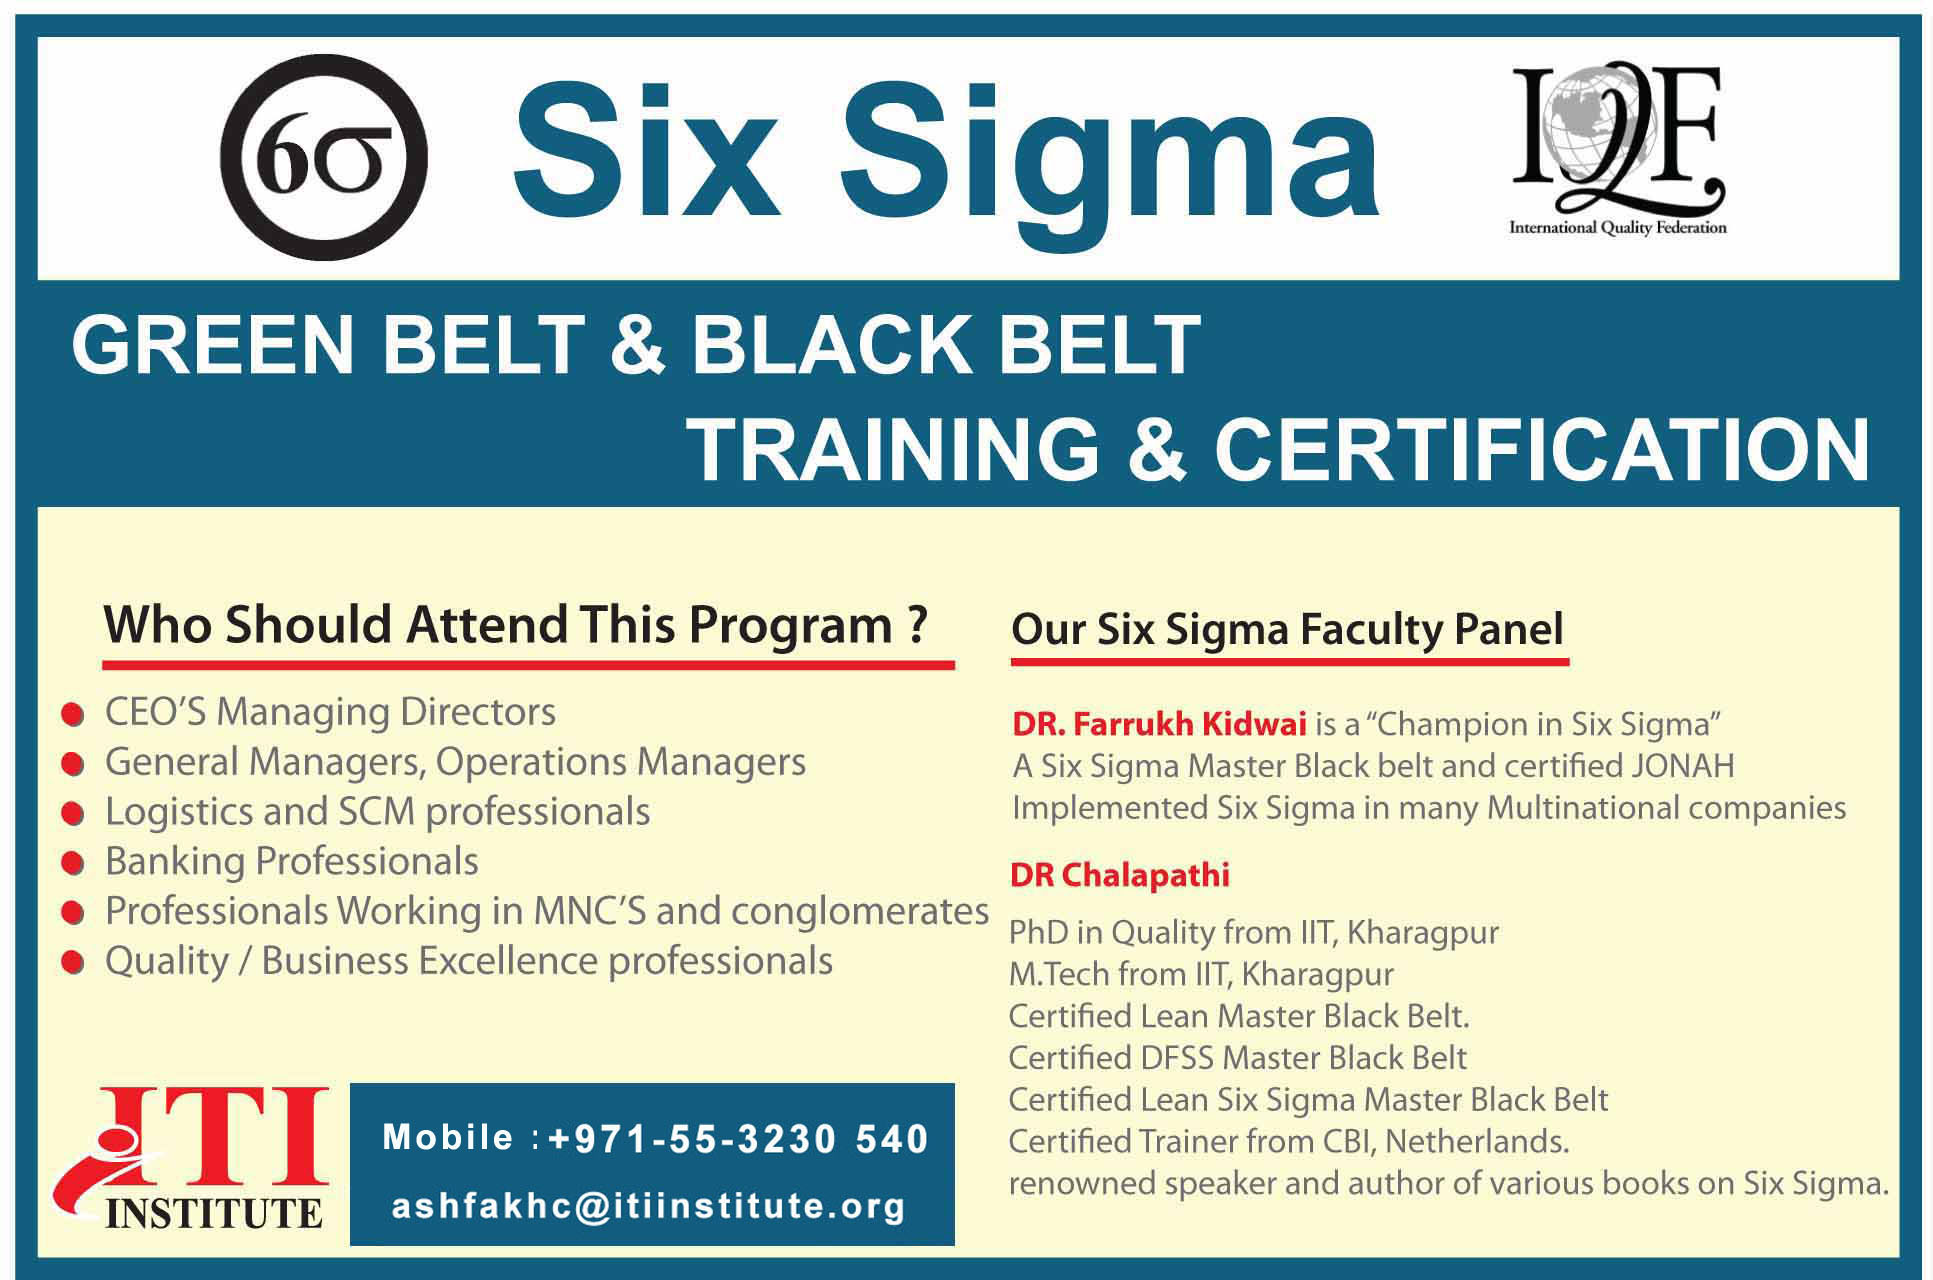 Six sigma training exolabogados six sigma green belt black belt training in dubai greensmedia com xflitez Choice Image